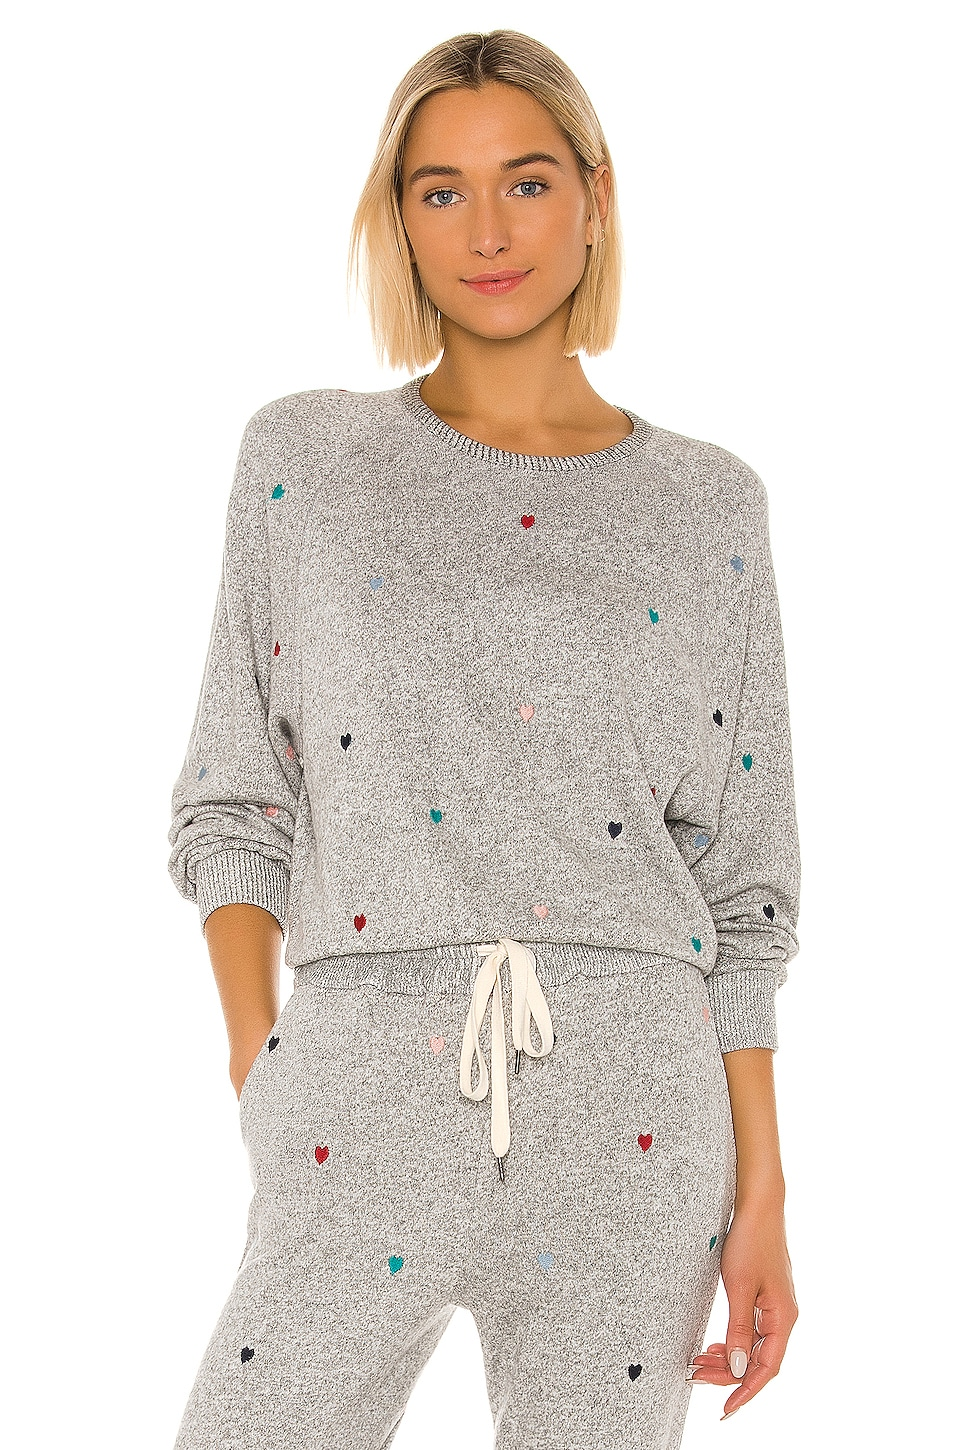 Rails Mika Sweatshirt in Melange Grey Rainbow Hearts